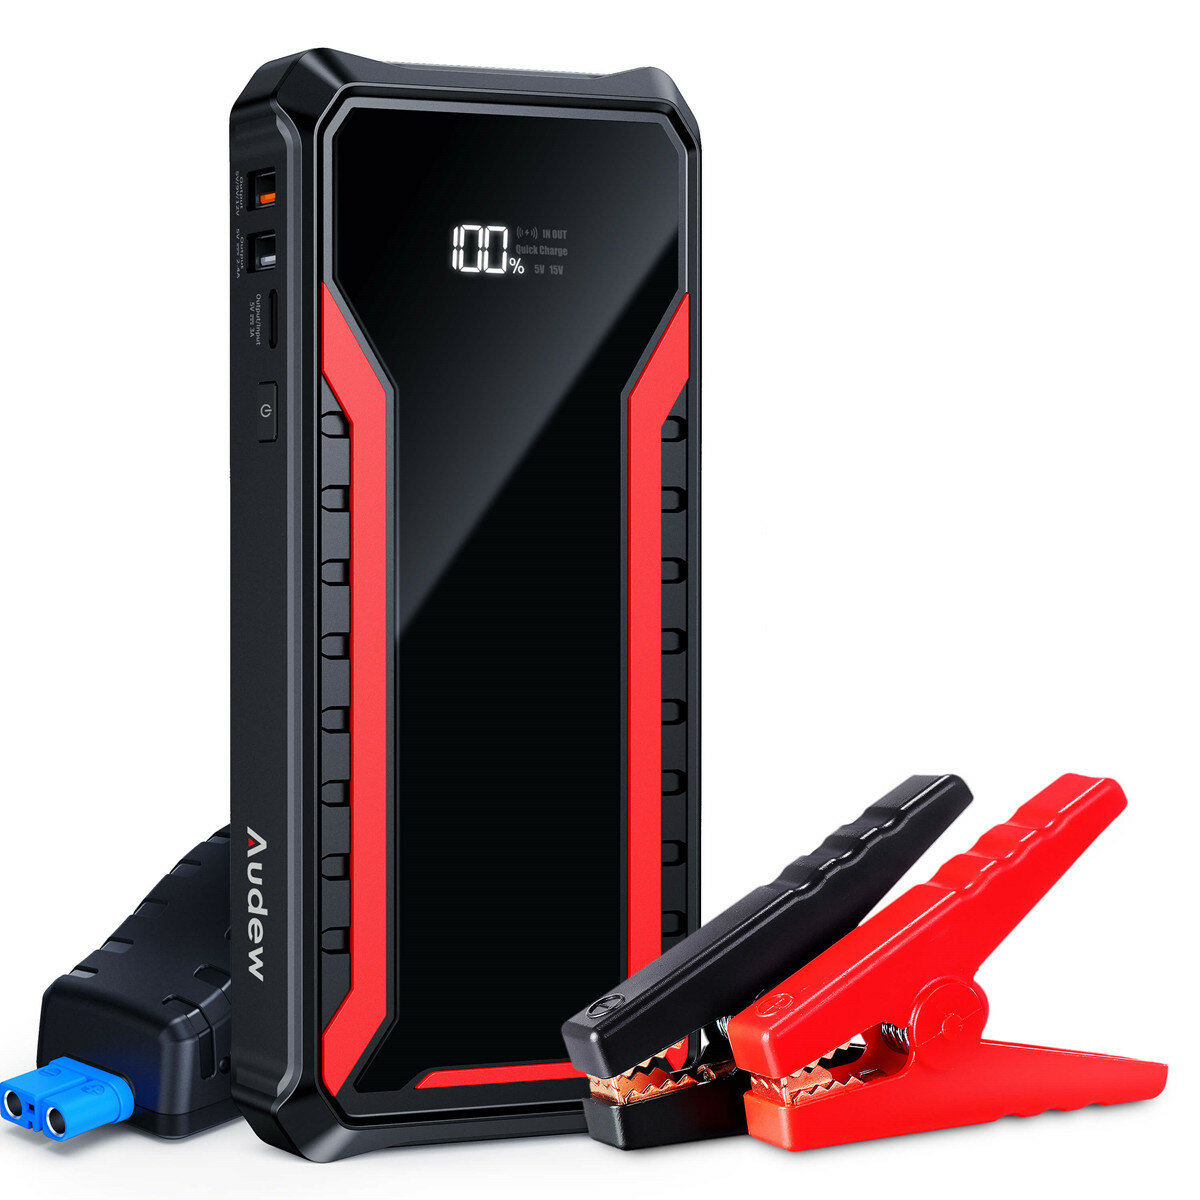 Audew 1500A 18000mAh Car Jump Starter for Up To 8.5L Gas or 6.5L Diesel Engines with 15W Wireless Quick Charging